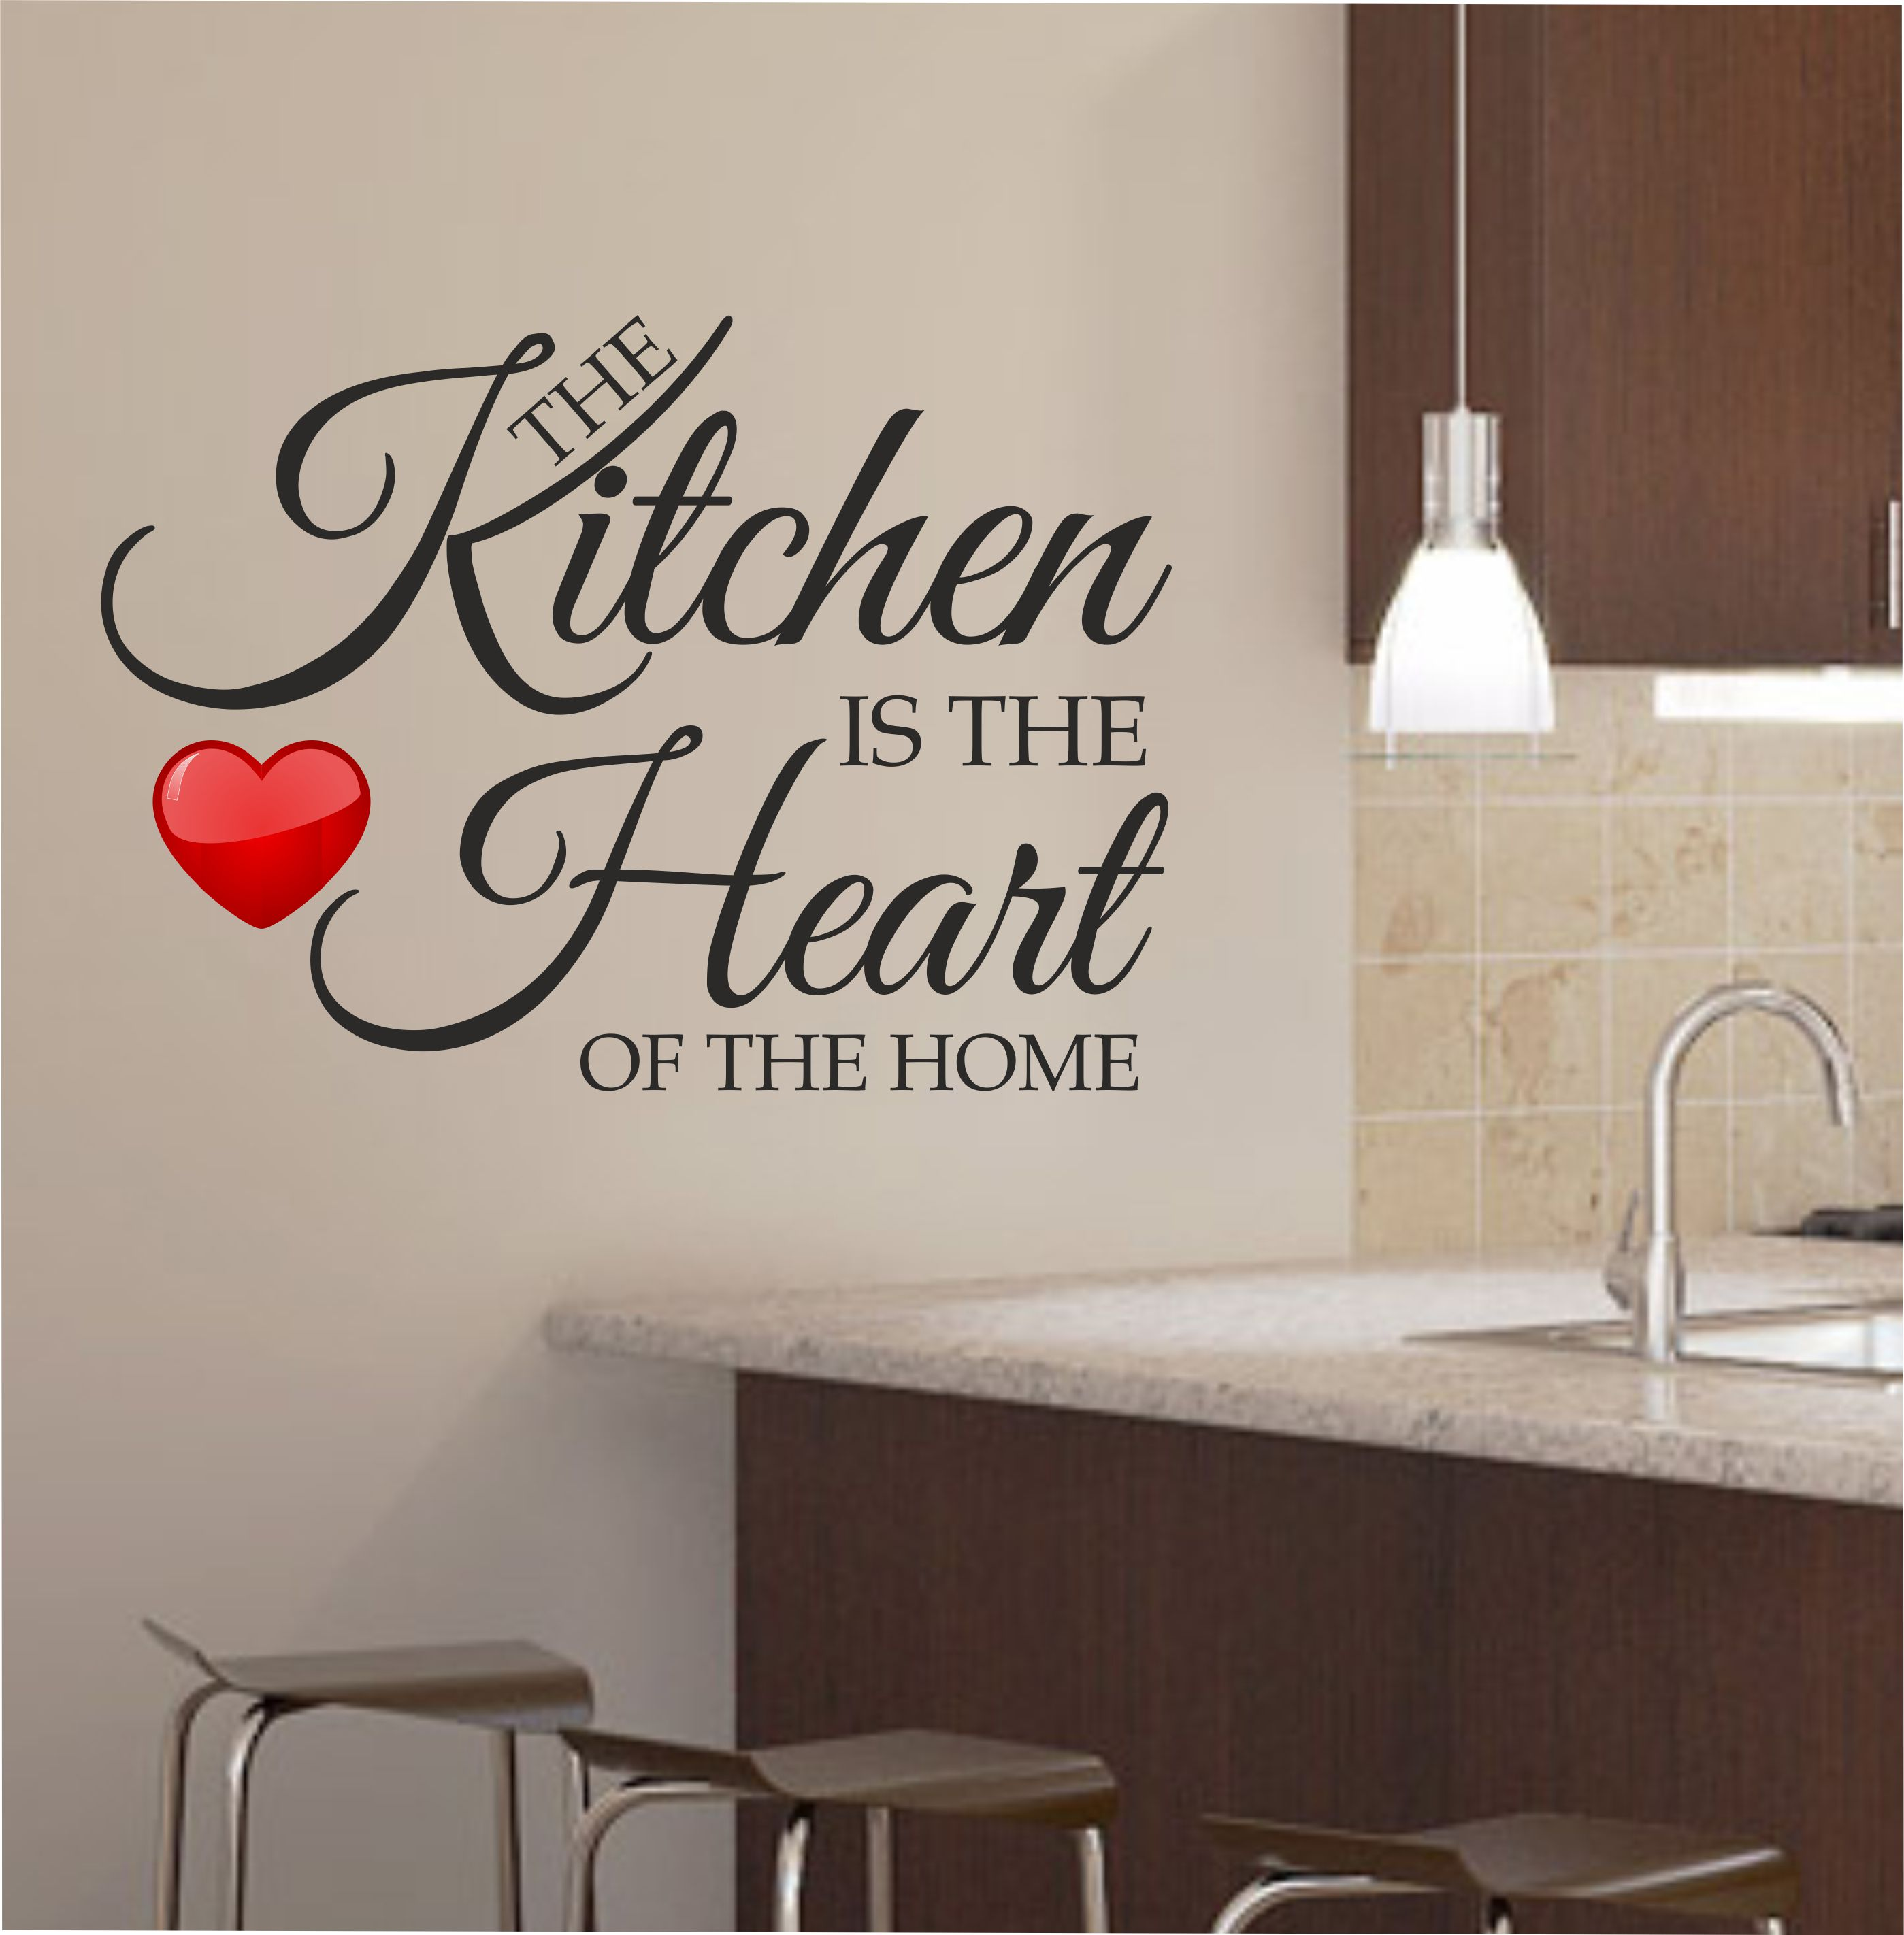 Kitchen wall art for a more fresh kitchen decor for Kitchen colors with white cabinets with large metal letter wall art